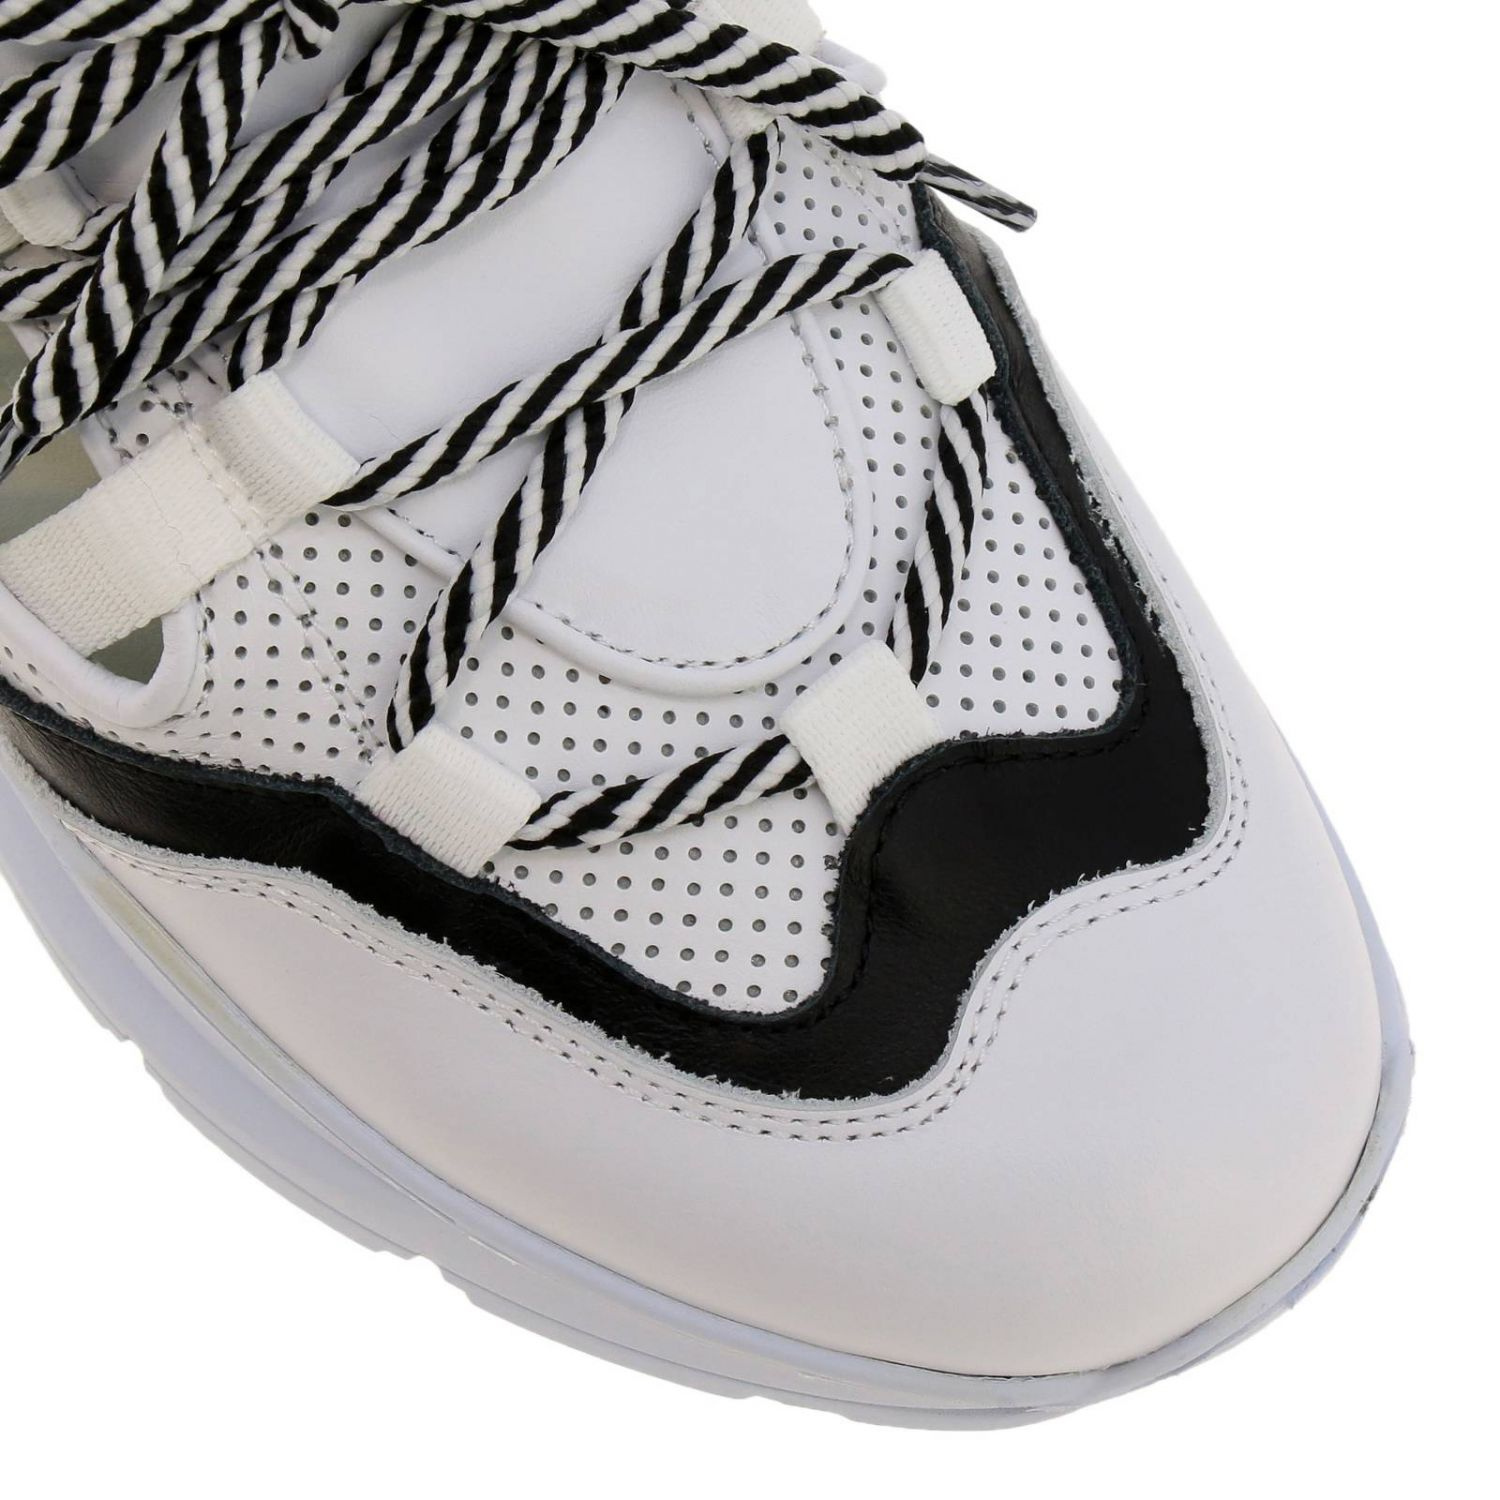 Shoes women Leather Crown white 3